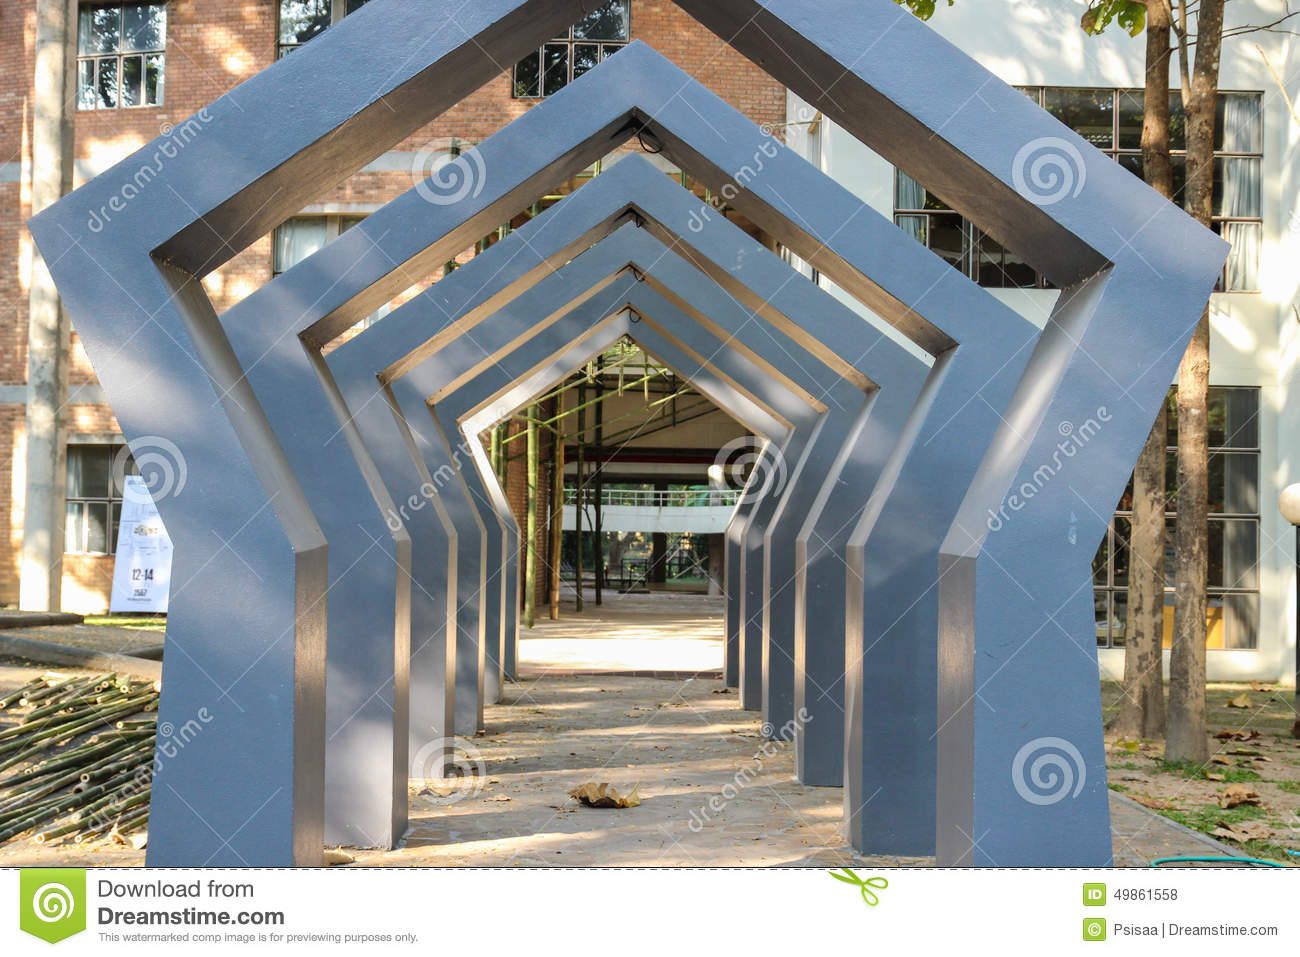 The Design Of Modern Archway Stock Photo - Image of building, pillar ...